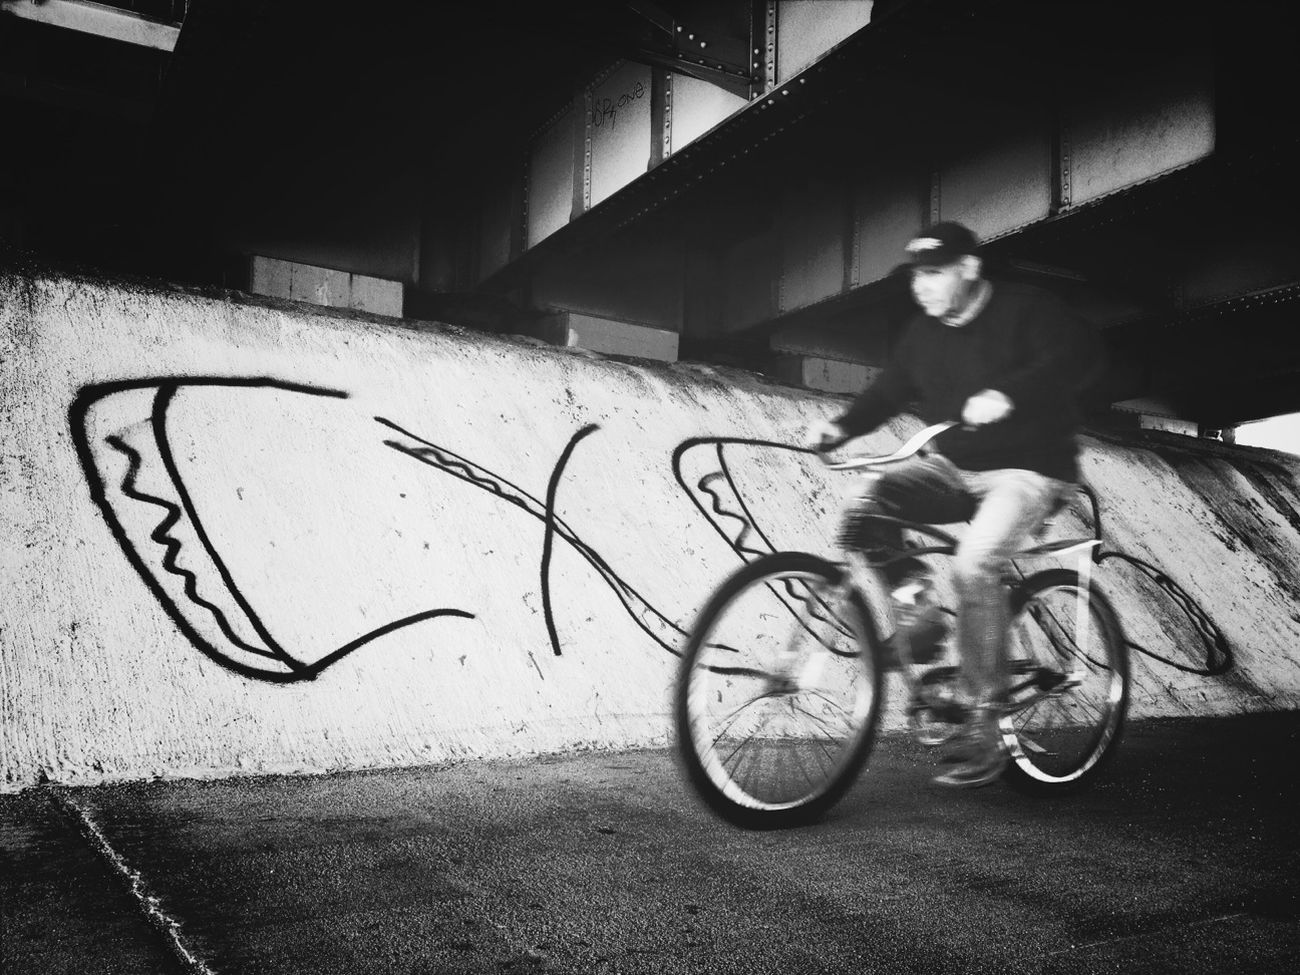 Streetphotography Blackandwhite Cycling KCe